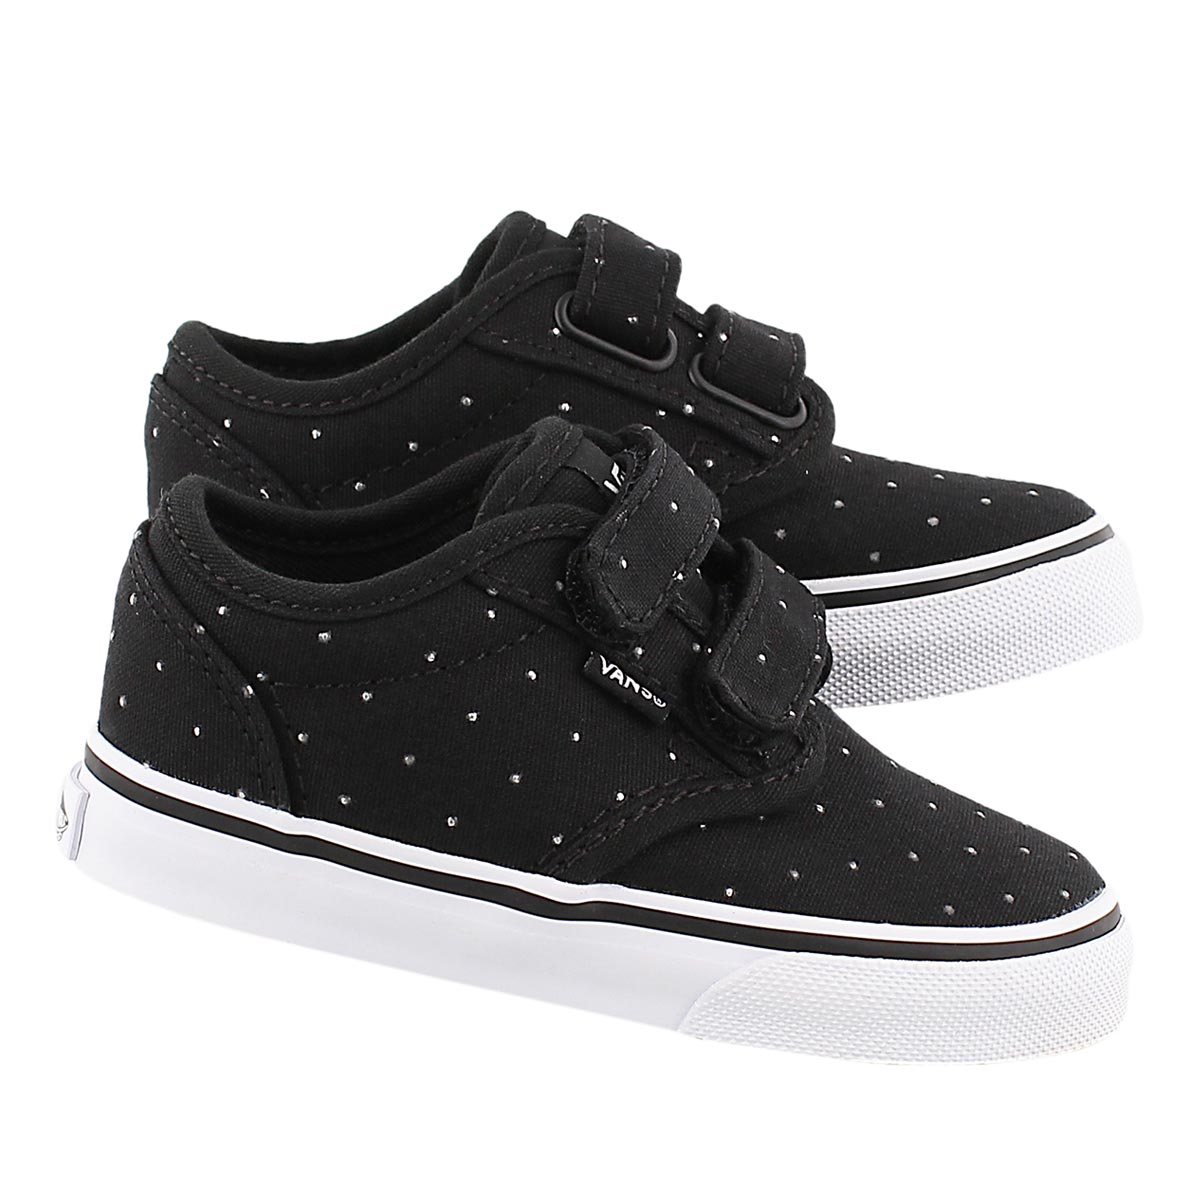 Infs Atwood blk studded sneaker